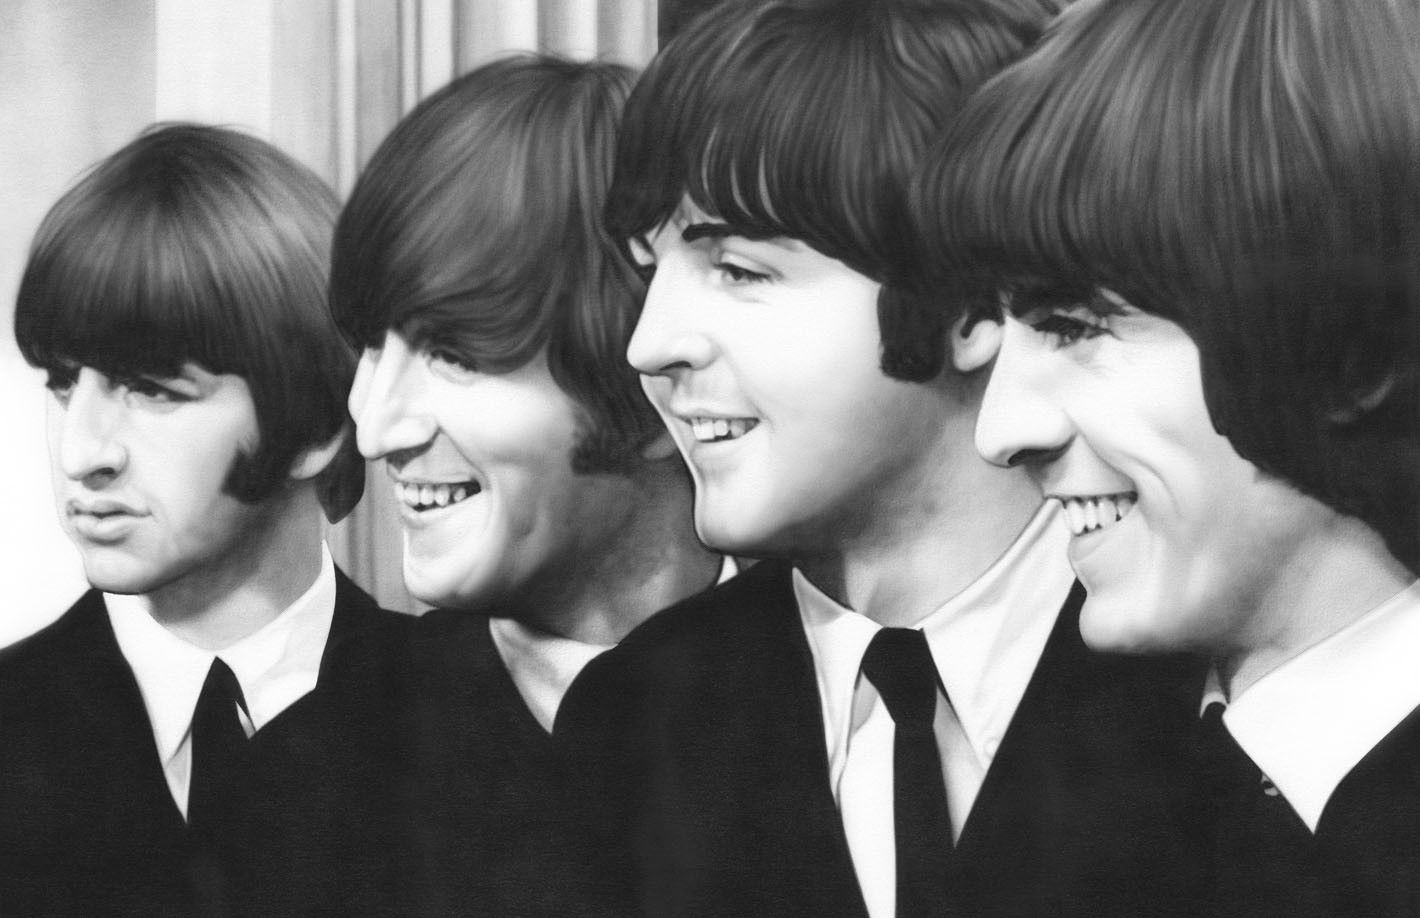 Image Result For Beatles Haircut Beatles Pictures The Beatles 1 The Beatles